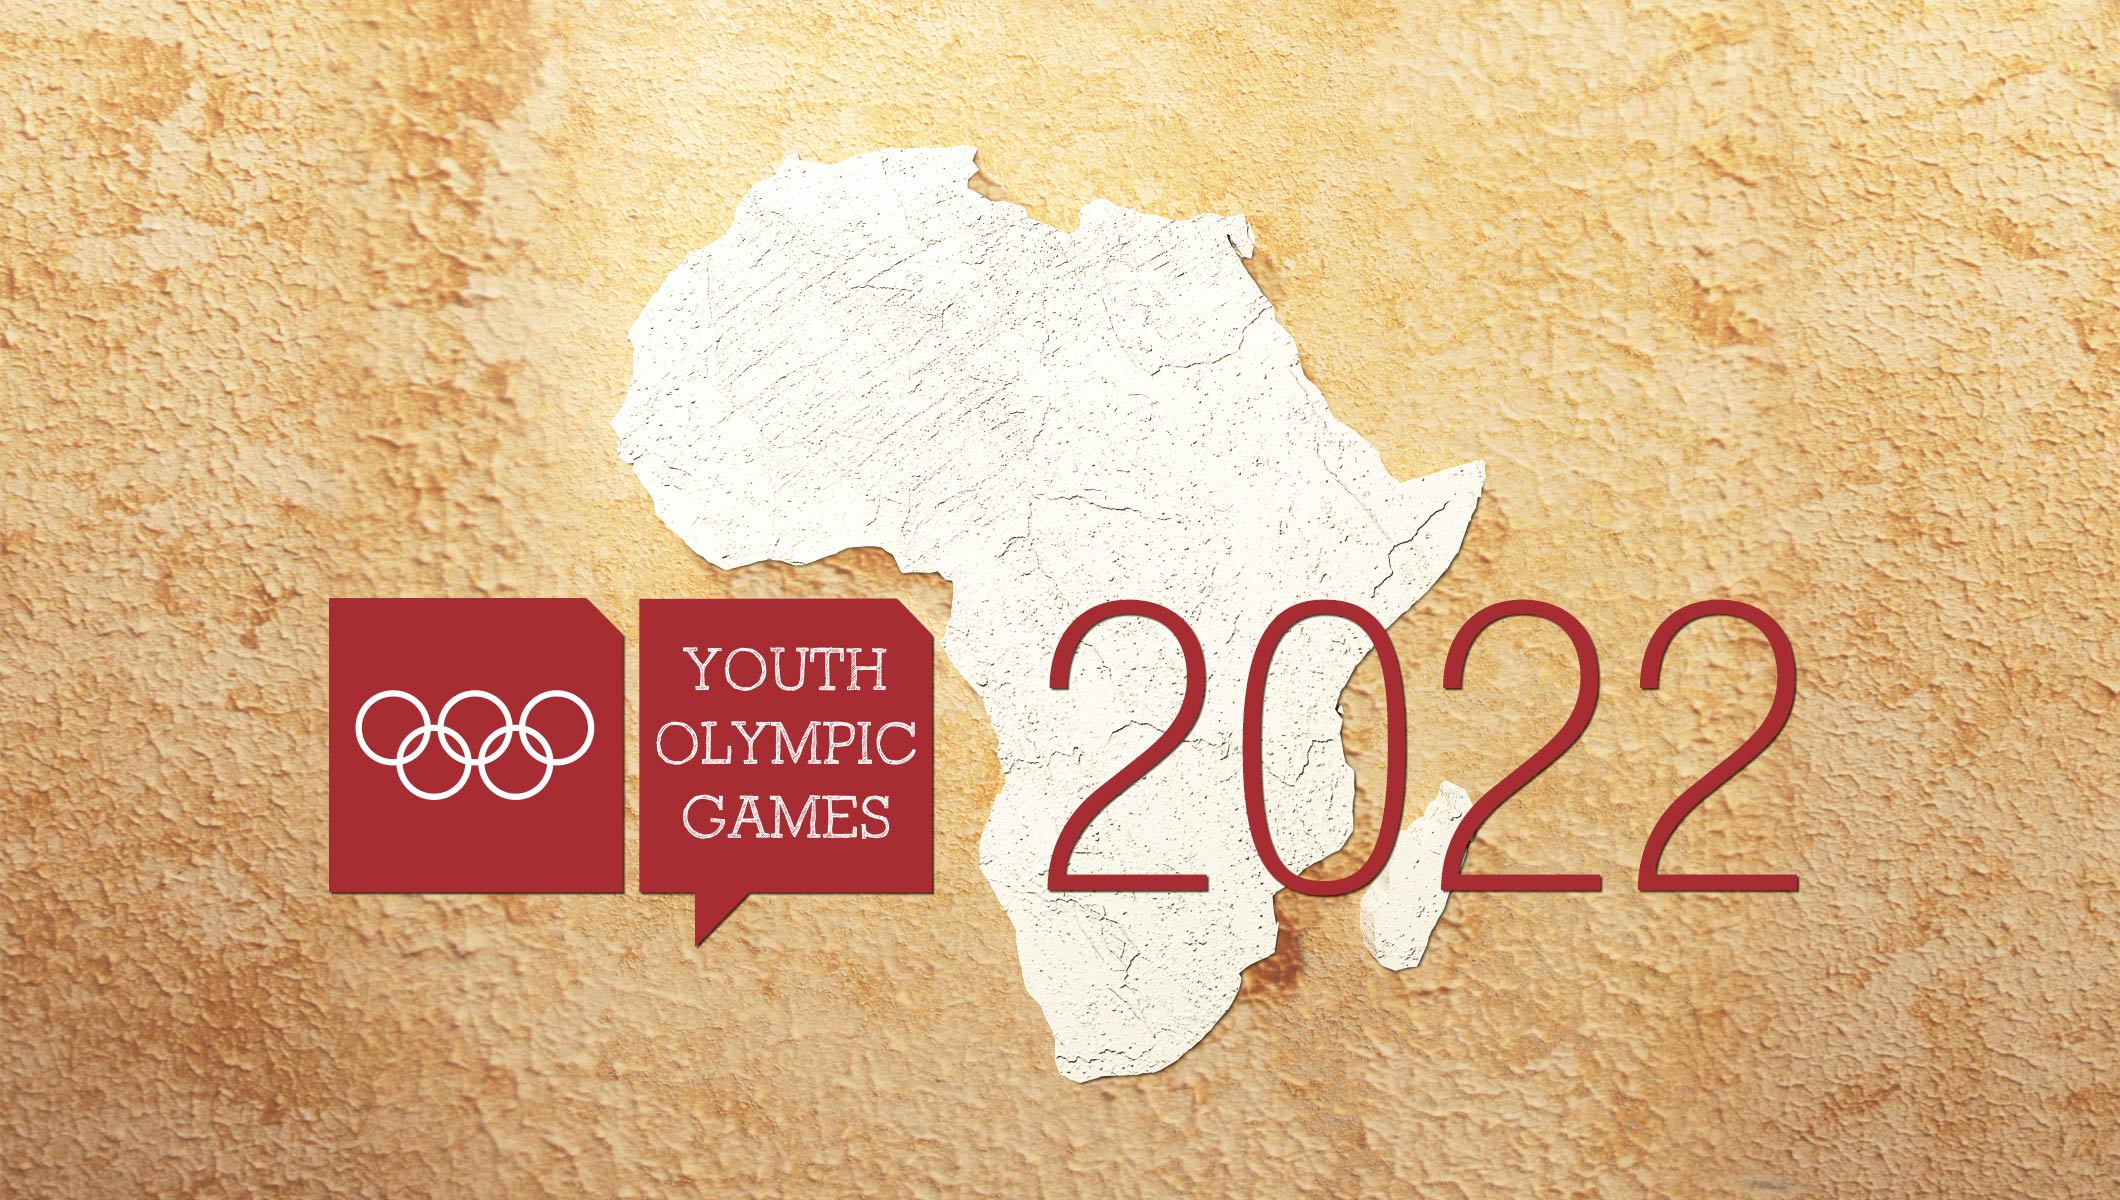 Senegal Recommended To IOC Session As Host Of Youth Olympic Games 2022